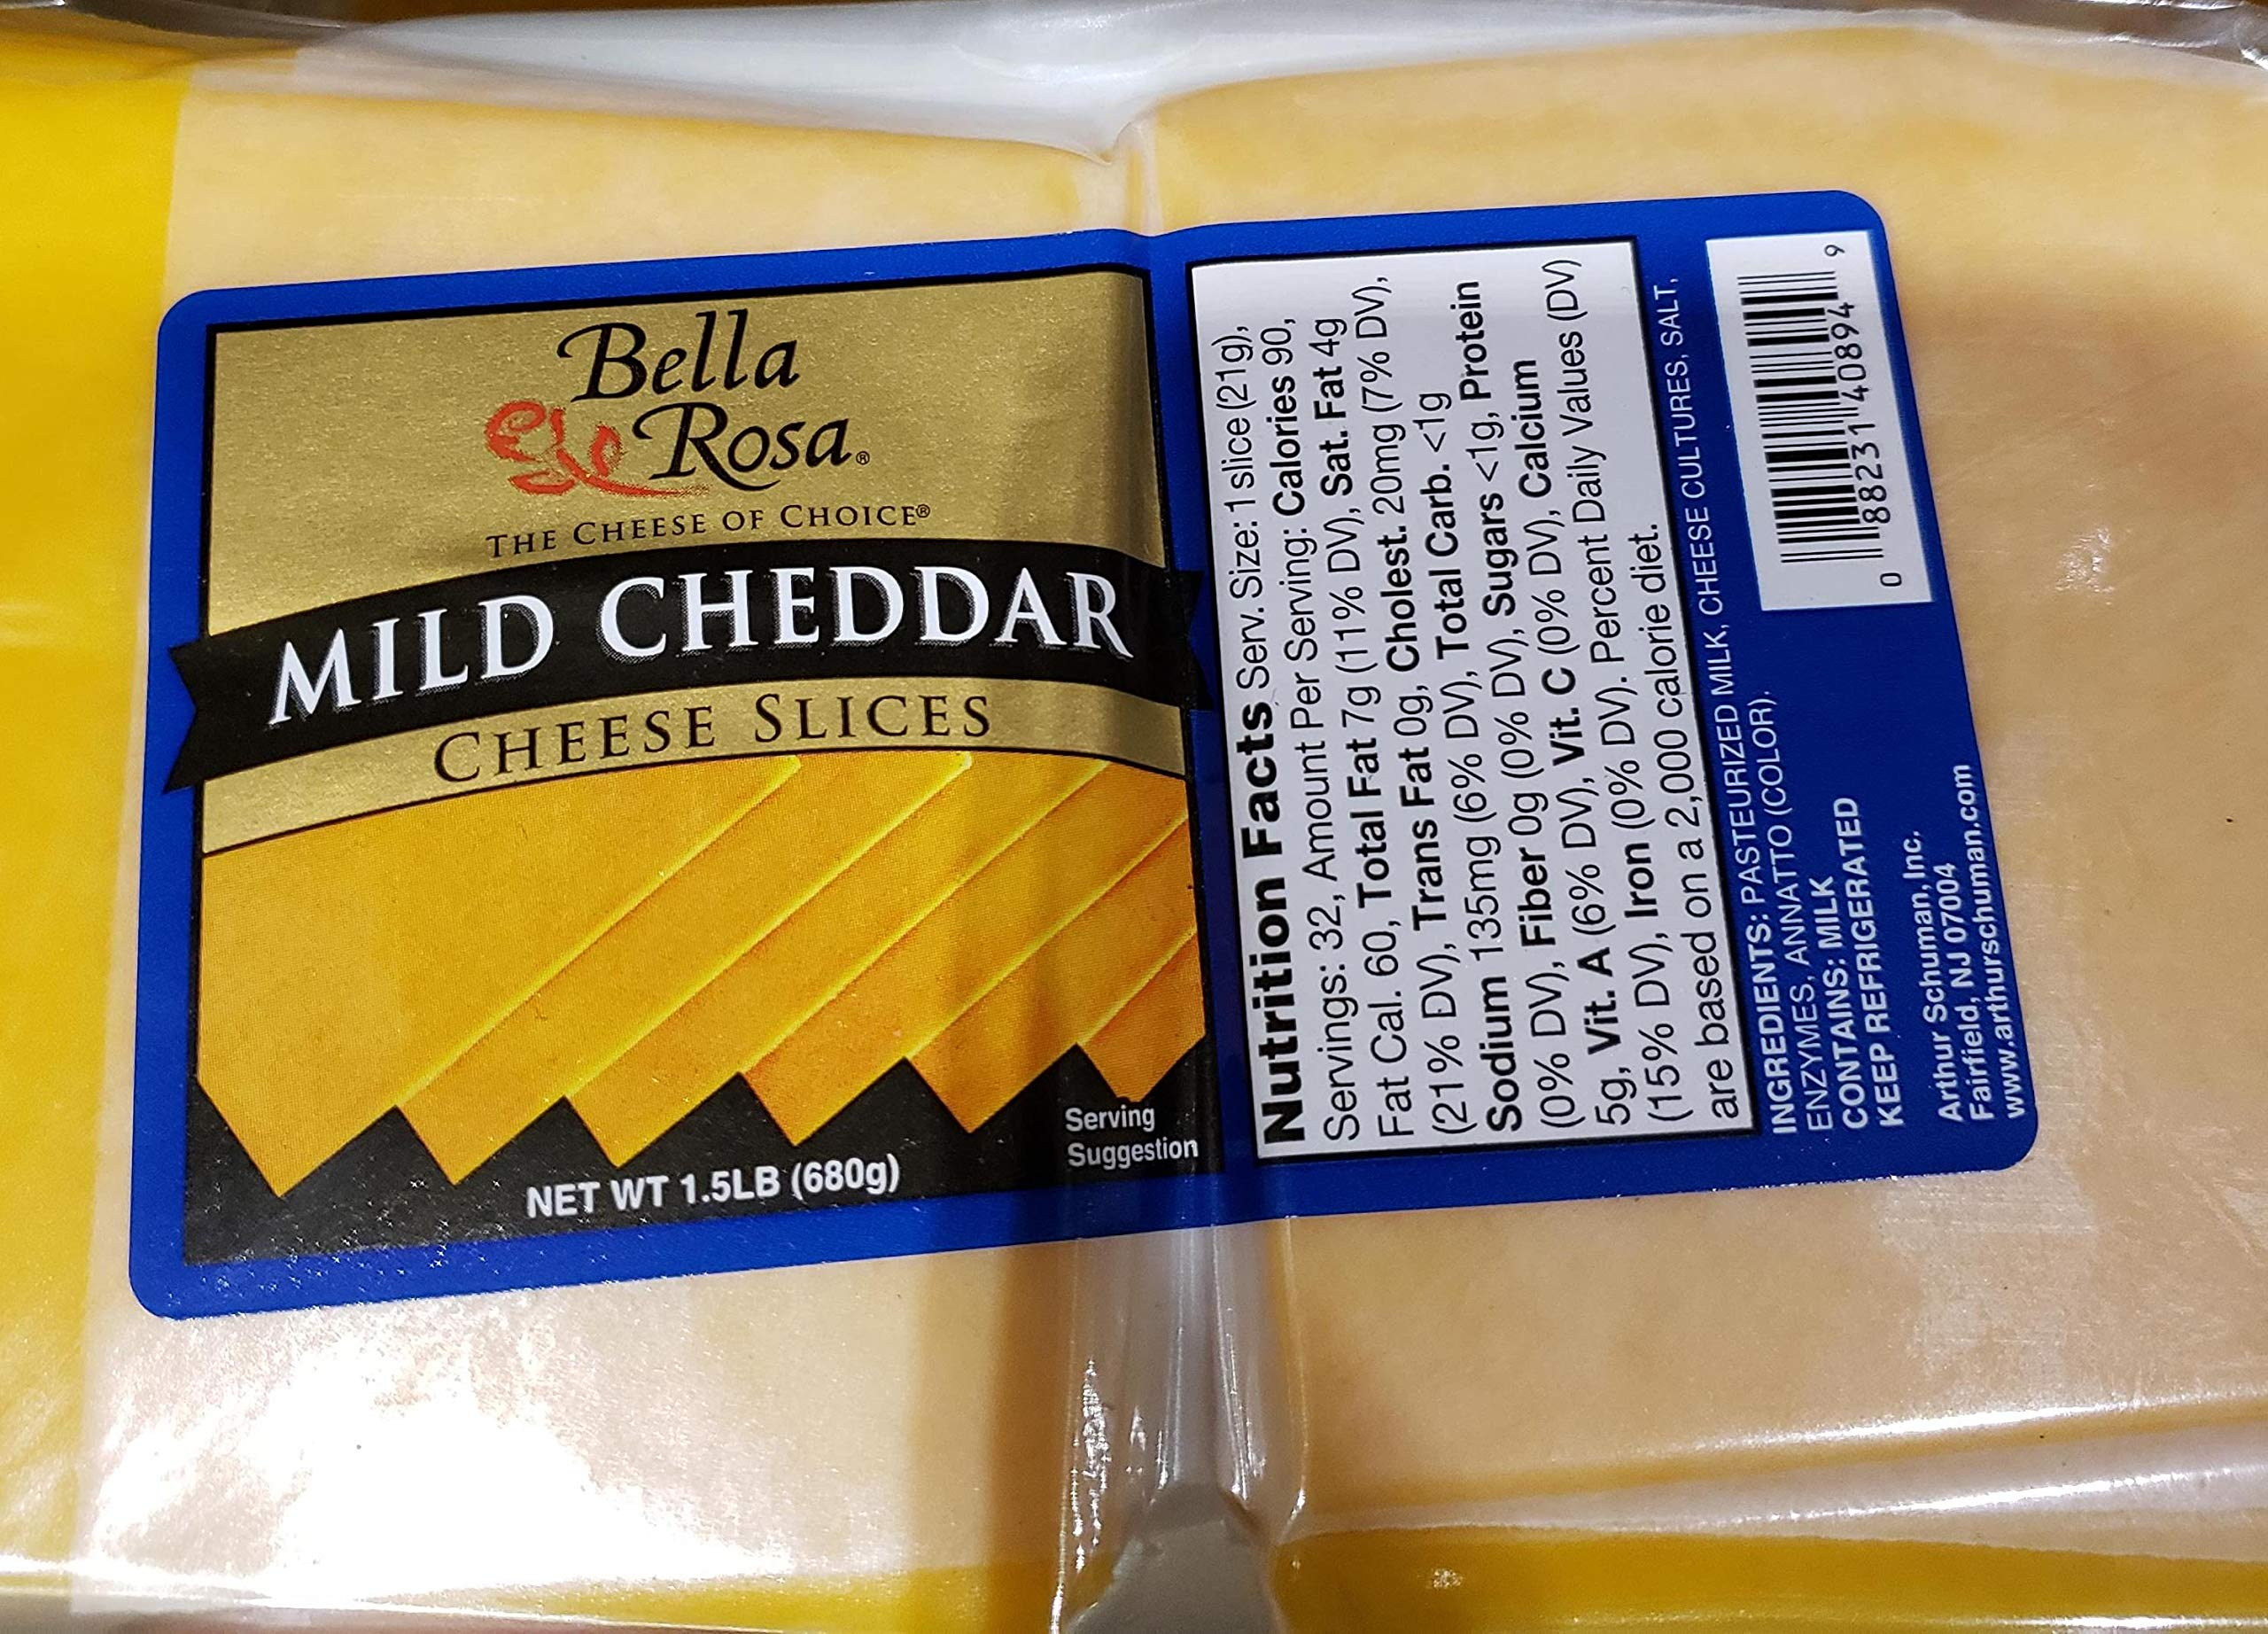 Bella Rosa Mild Cheddar Cheese Slices 1.5lbs (680gr)